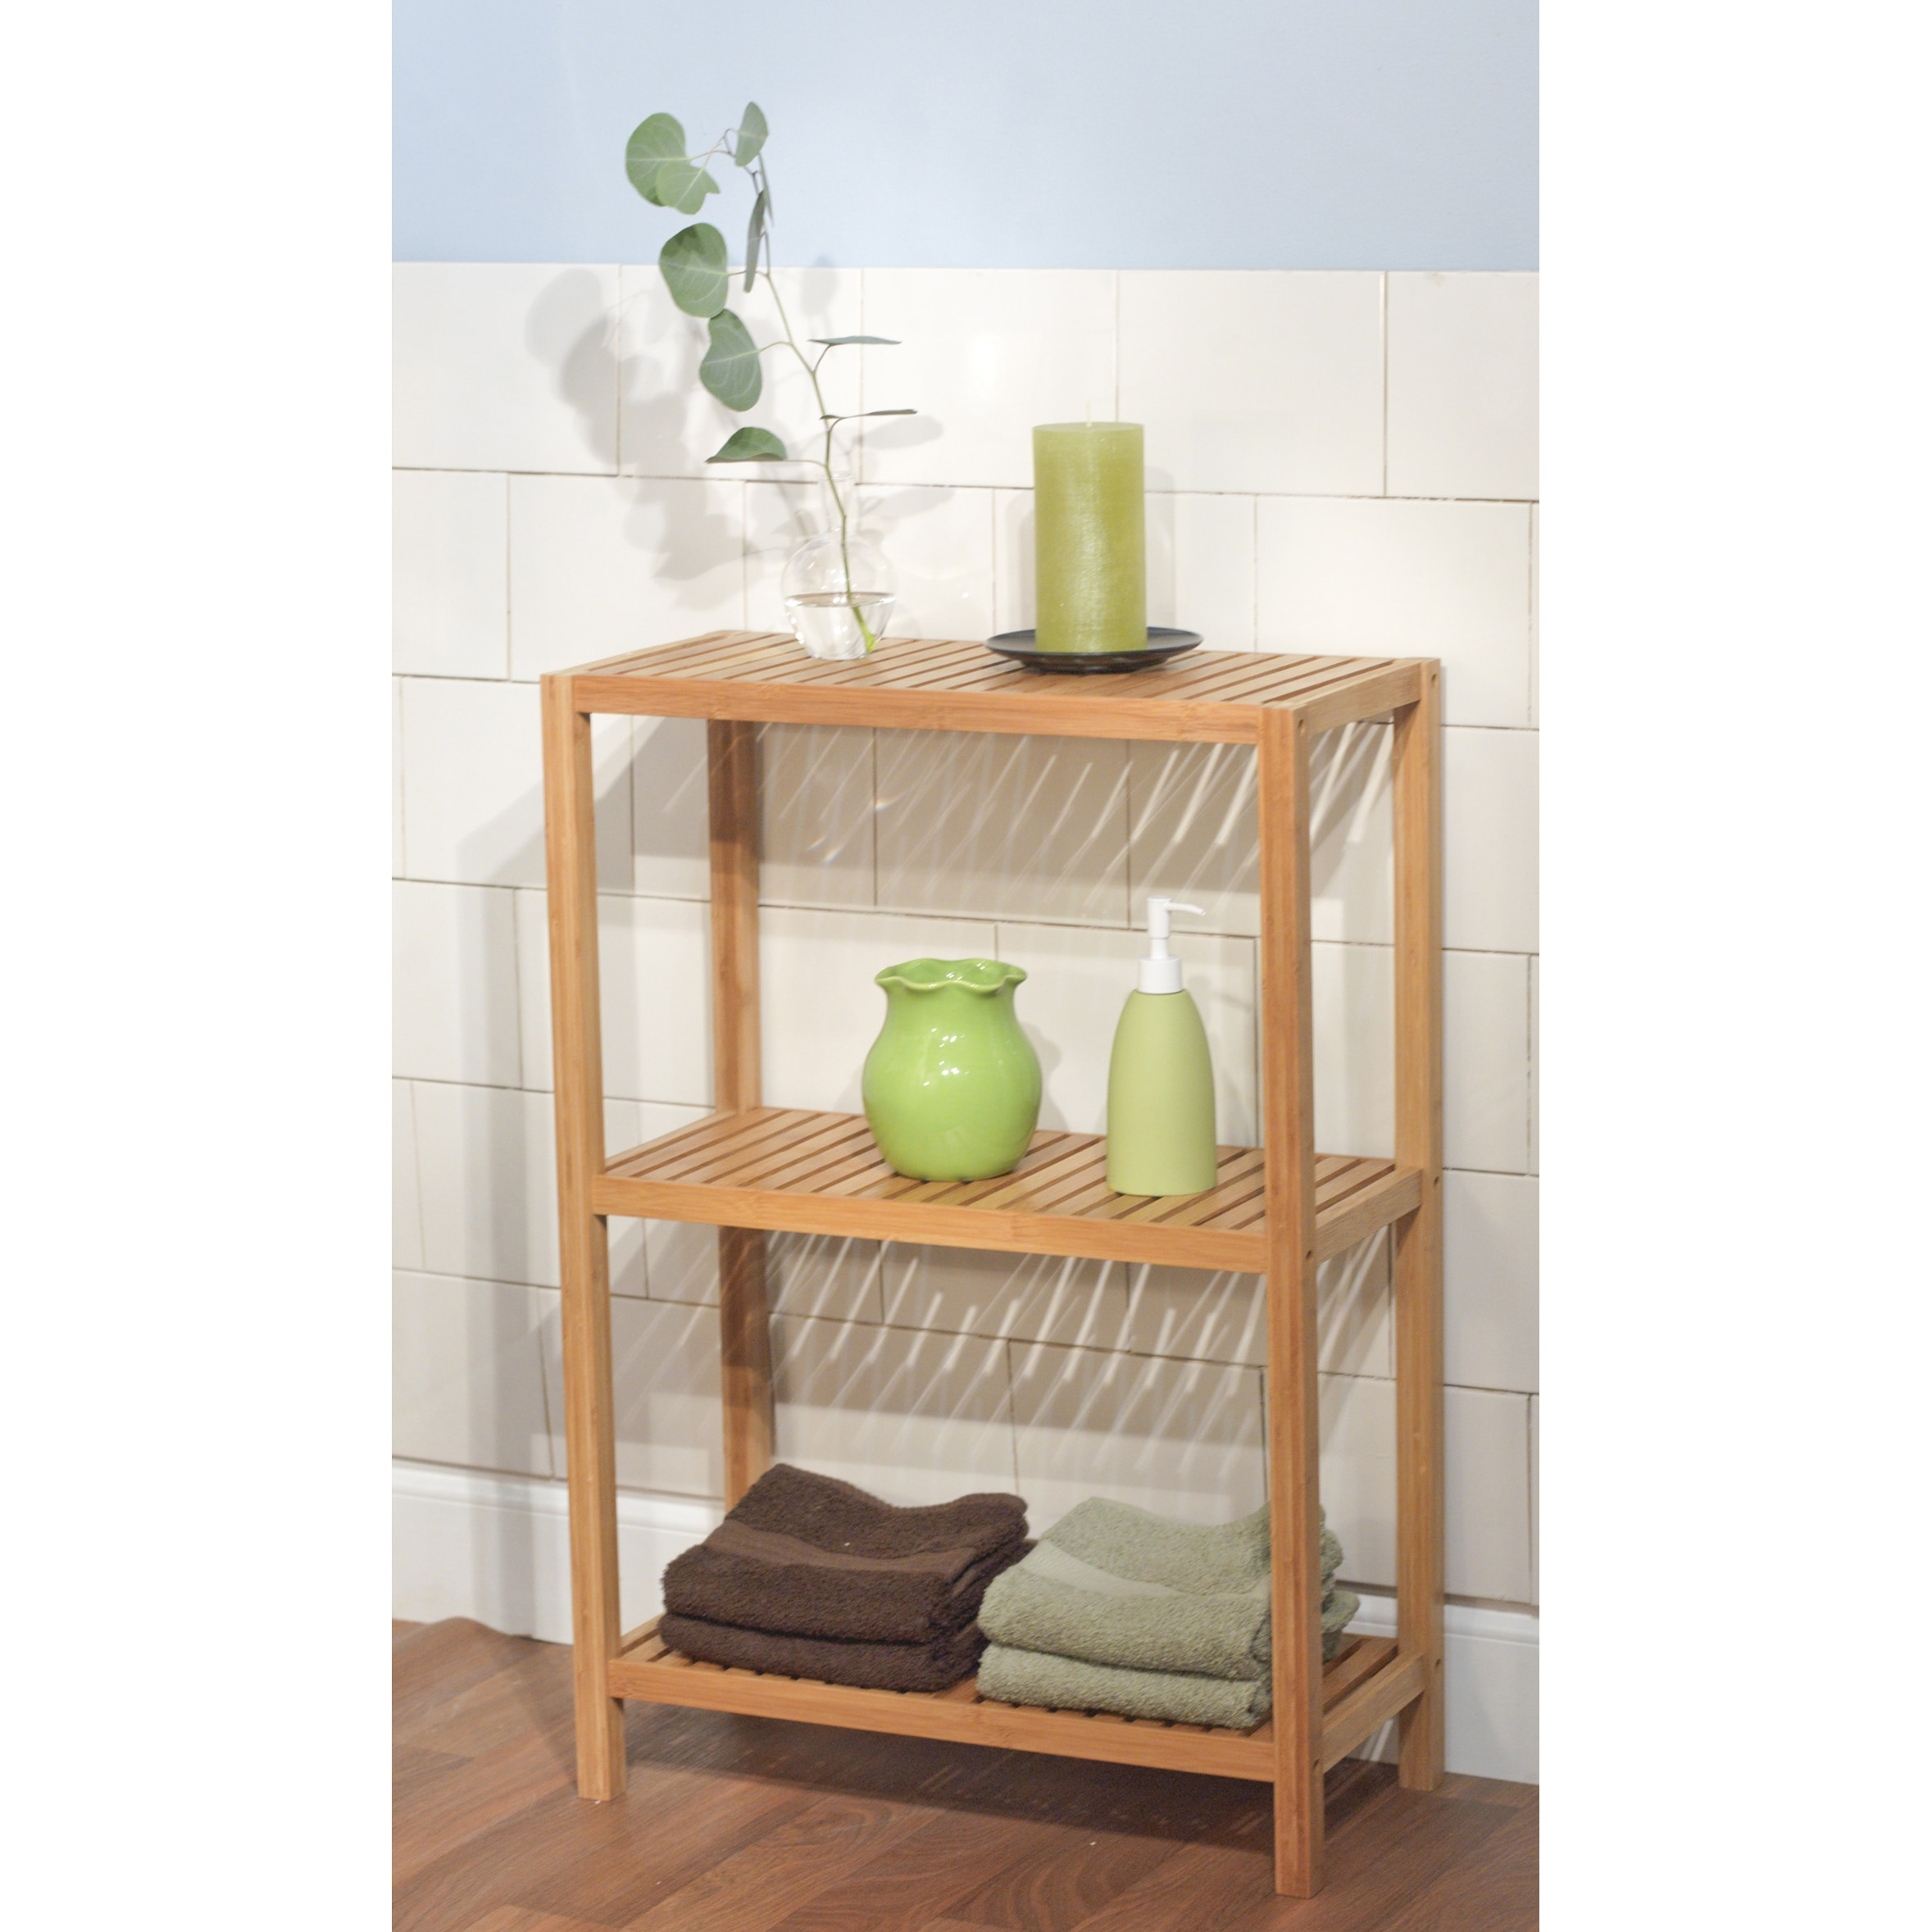 Simple living bamboo 3 tier shelf free shipping today - Accessories for bathroom shelves ...